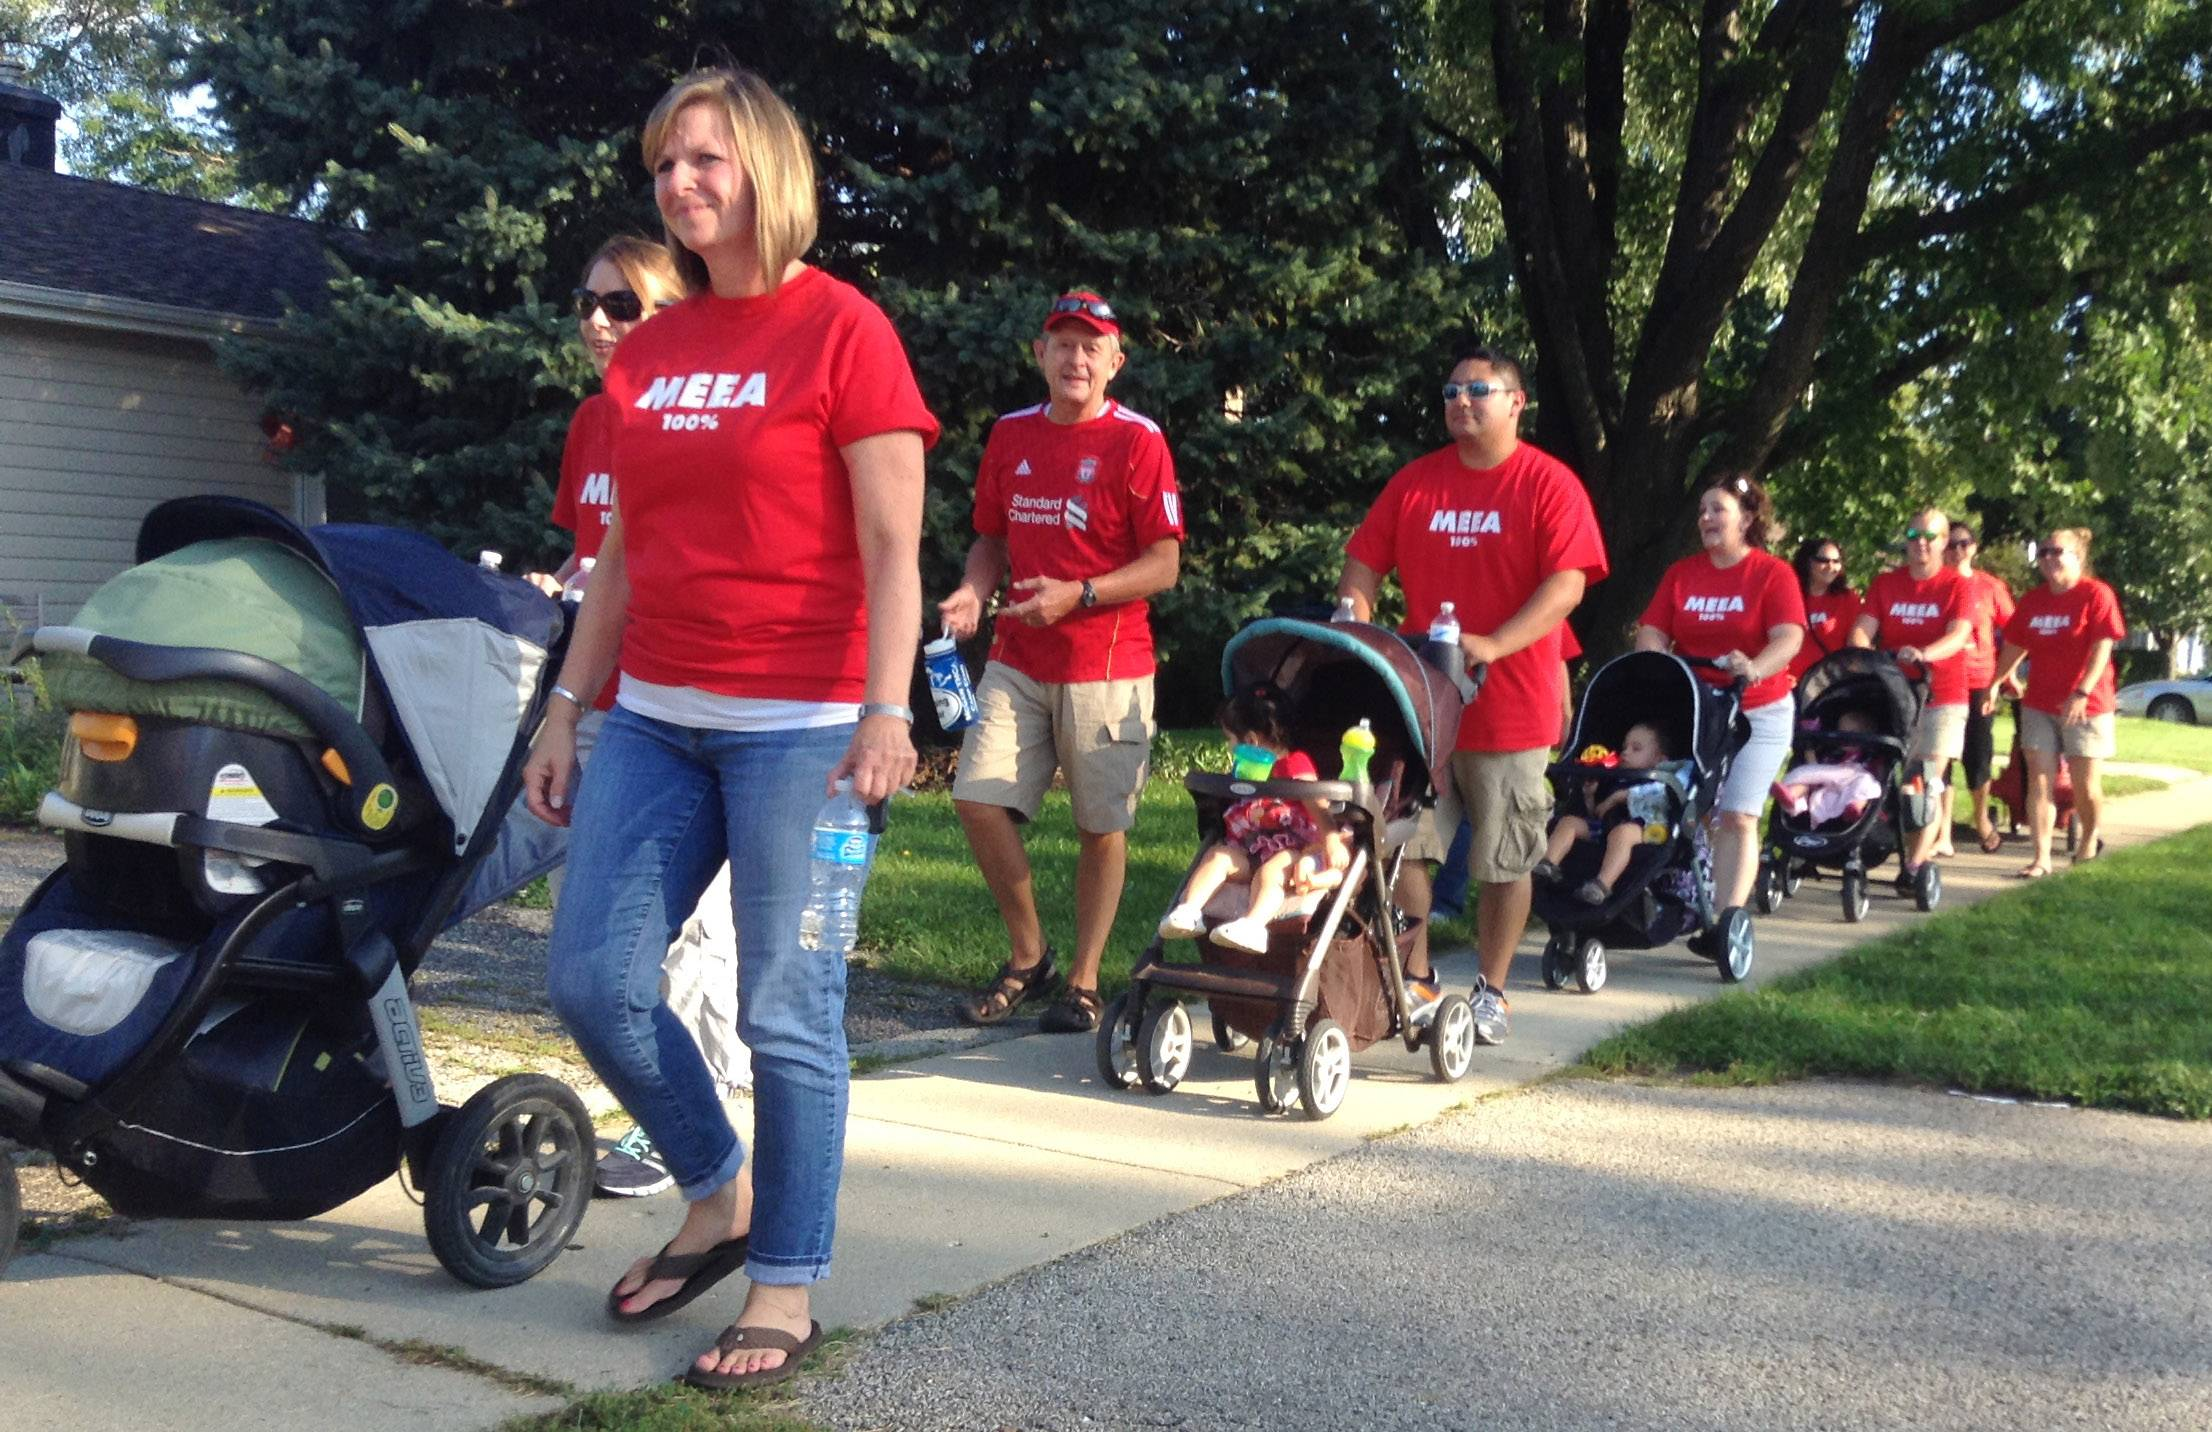 Mundelein Elementary District 75 teachers and supporters on Wednesday evening walked from Carl Sandburg Middle School to the district office on Route 45 in support of the negotiating team. Contract talks between the school board and teachers may be nearing a conclusion.